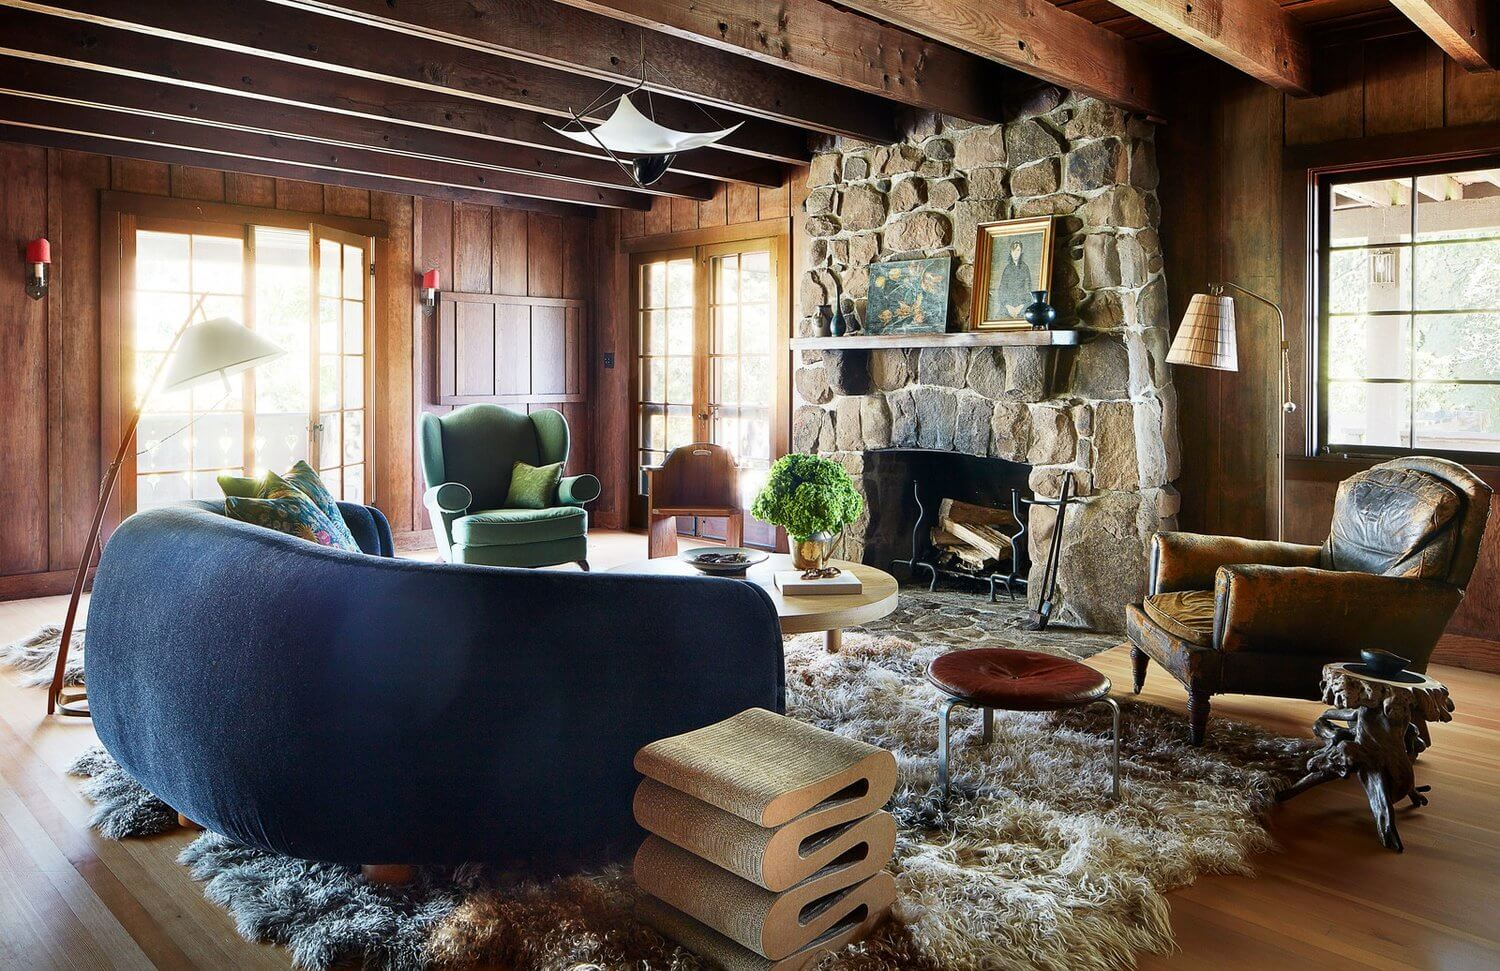 Anne Hathaway's Warm California Country Home